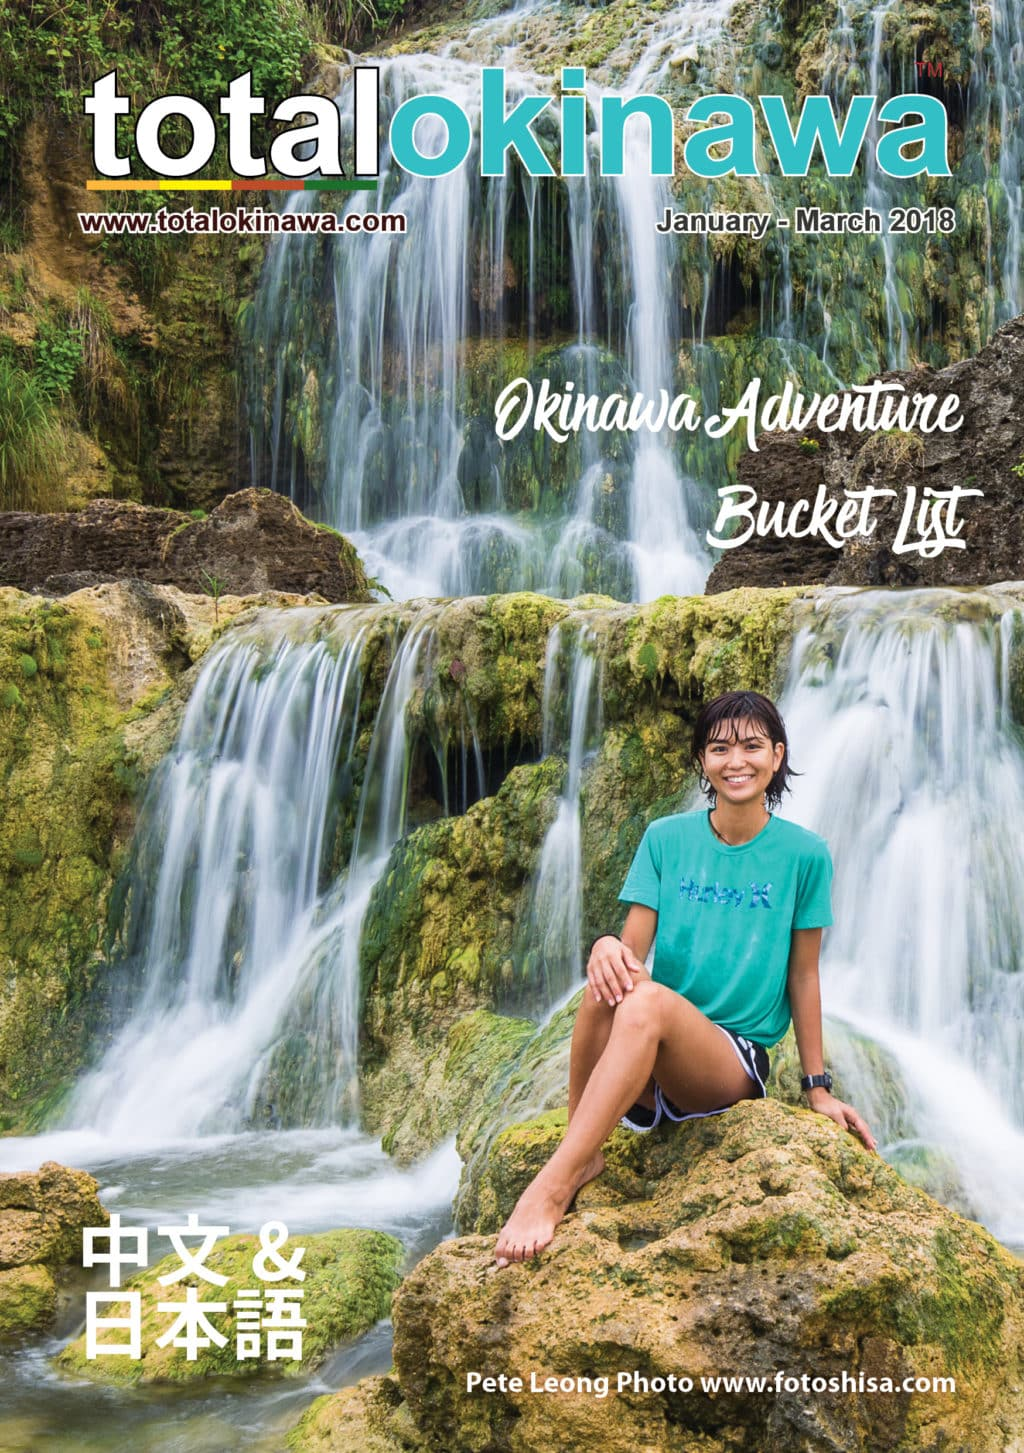 Total Okinawa Magazine Cover Jan 2018 - Okinawa Adventure Bucket List